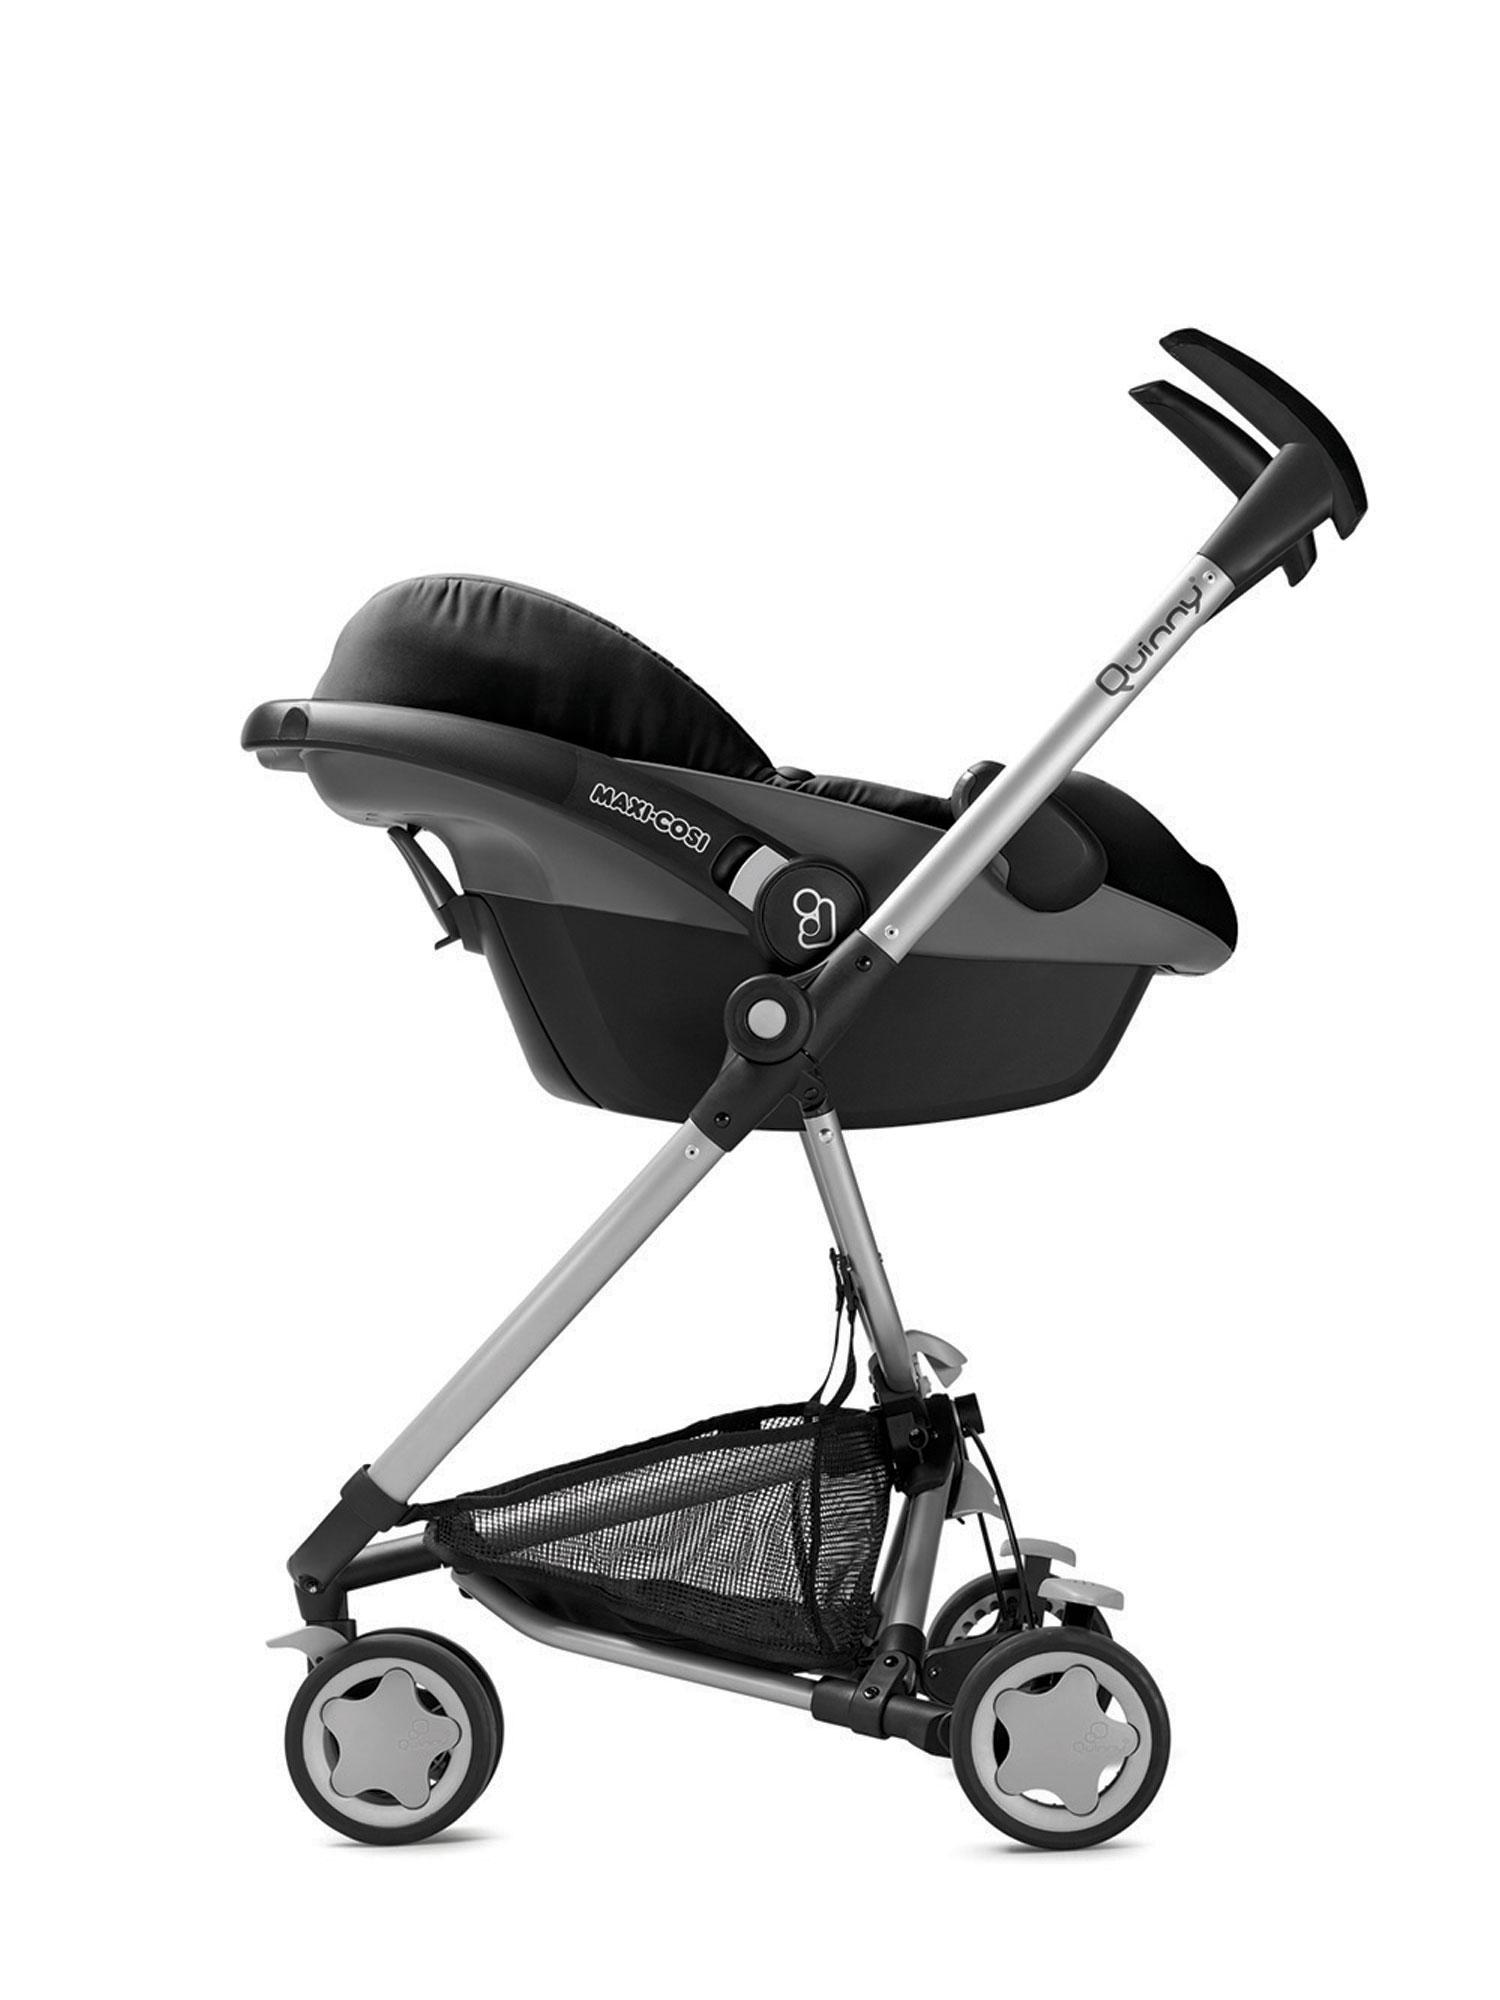 quinny zapp kinderwagen buggy kombiset mit maxi cosi babyschale erweiterbar superleicht und. Black Bedroom Furniture Sets. Home Design Ideas